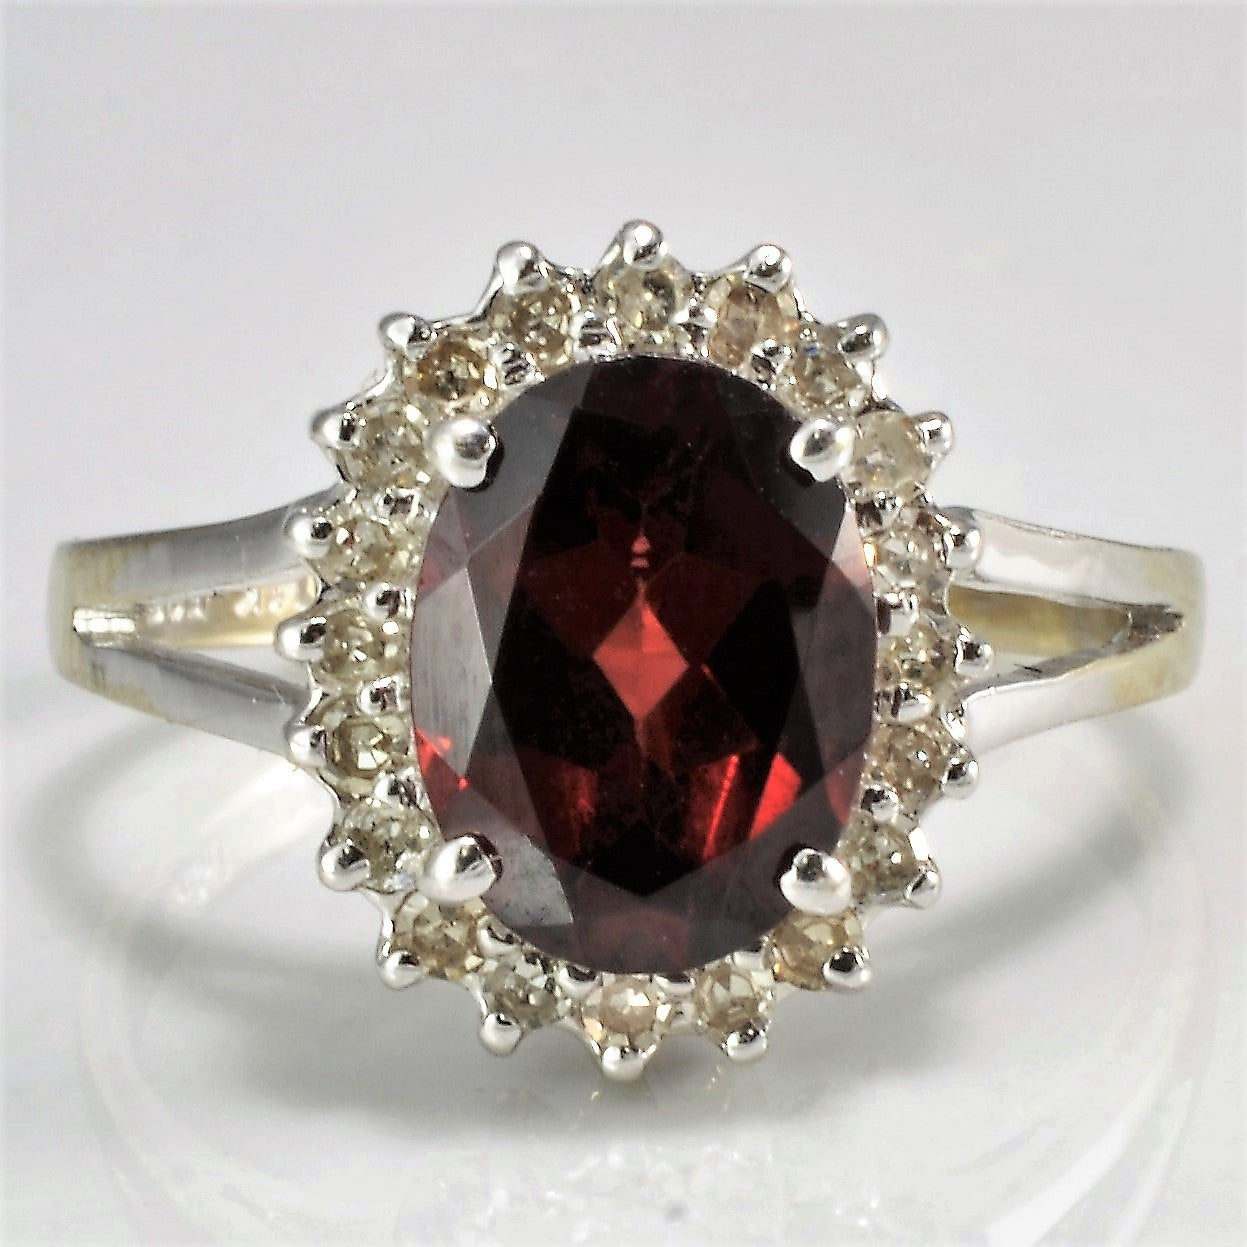 Oval Cut Garnet & Diamond Ring | 0.10 ctw, SZ 4 |